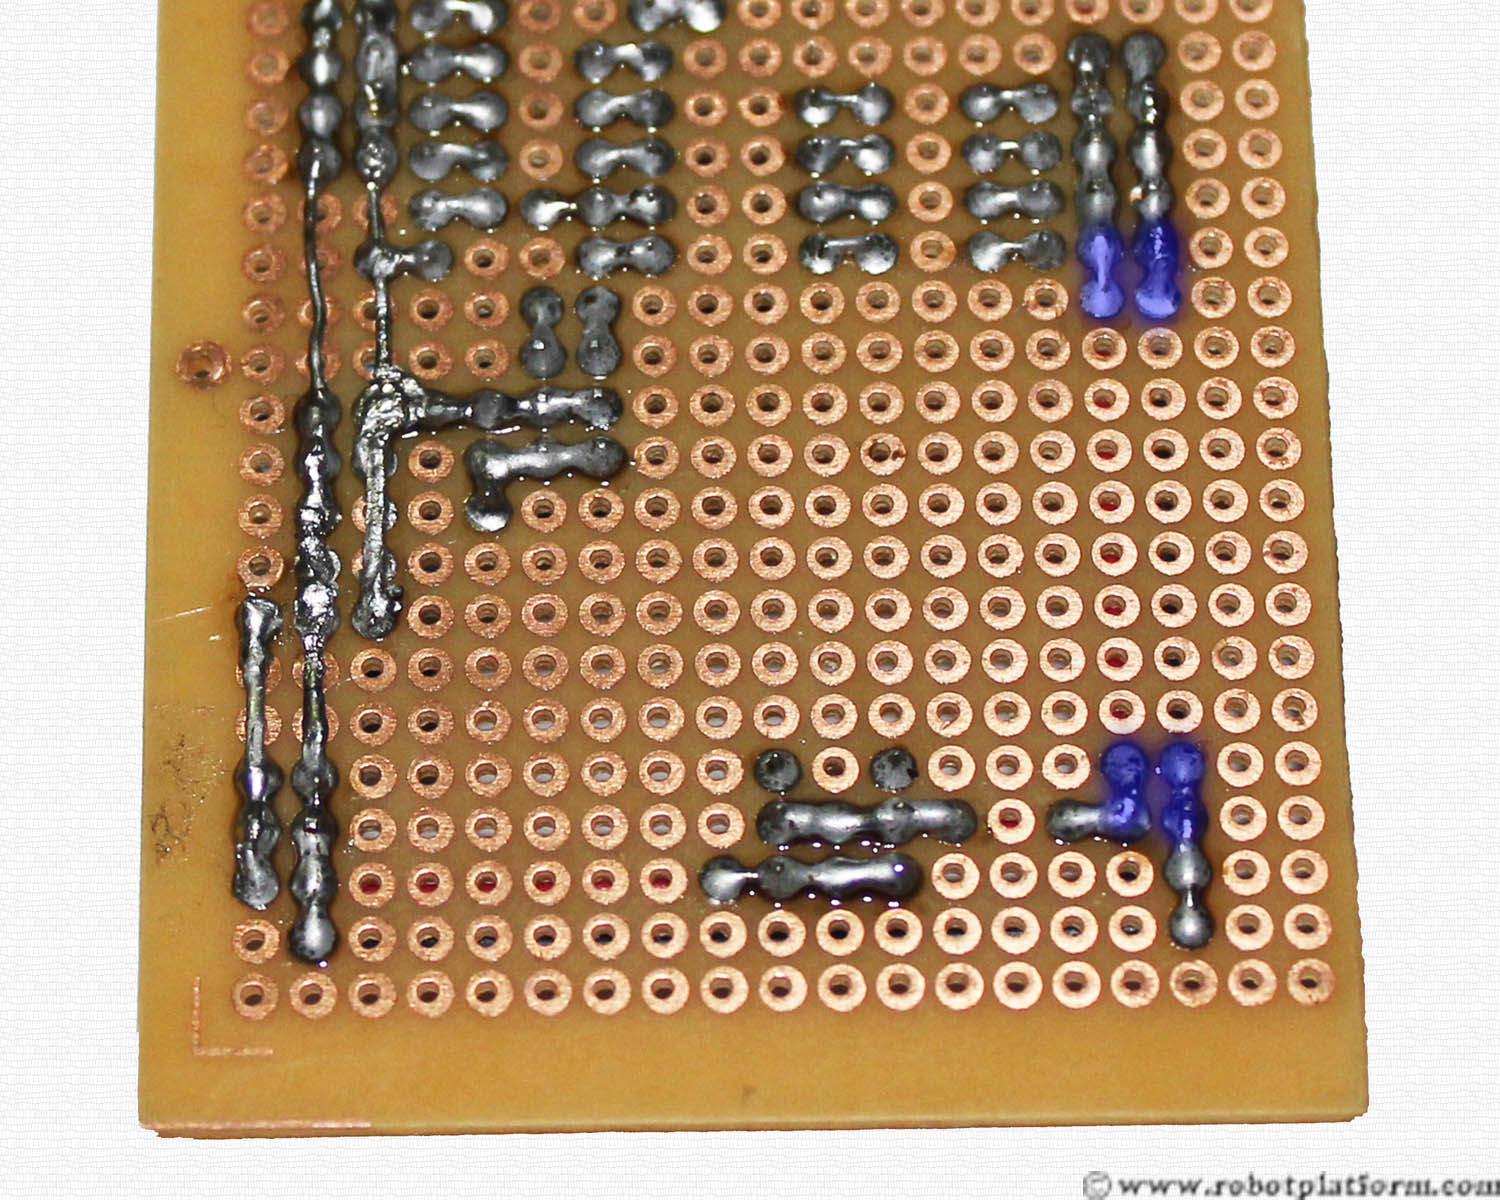 Now You Can Solder The Wires To The Circuit Board But Before That I